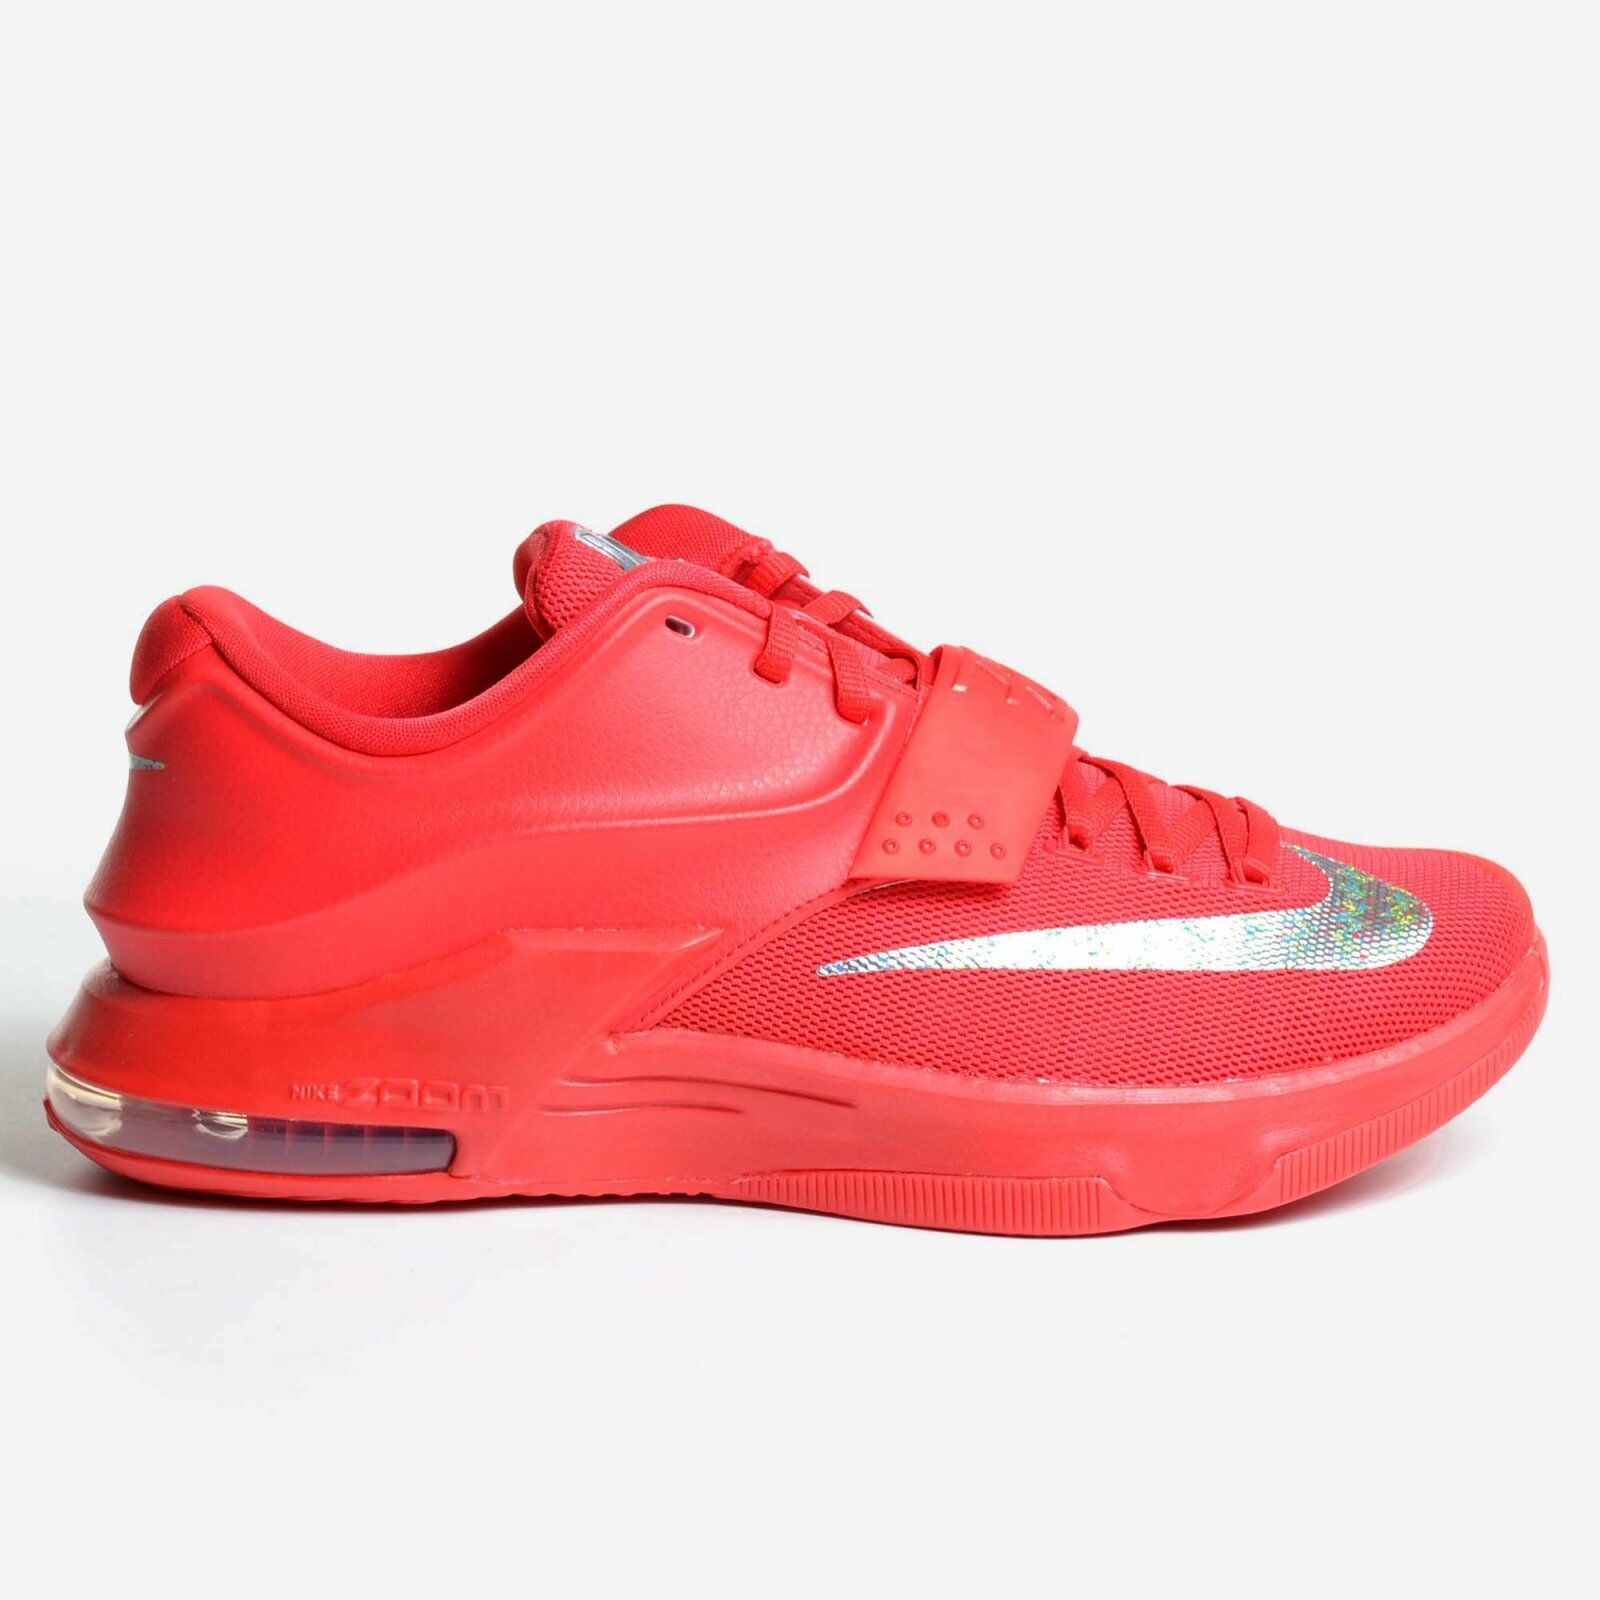 Nike Kd 7 Game EP Global Game 7 2018 Action Rojo Plata XDR VII Basketball DS 653997-660 e244ec